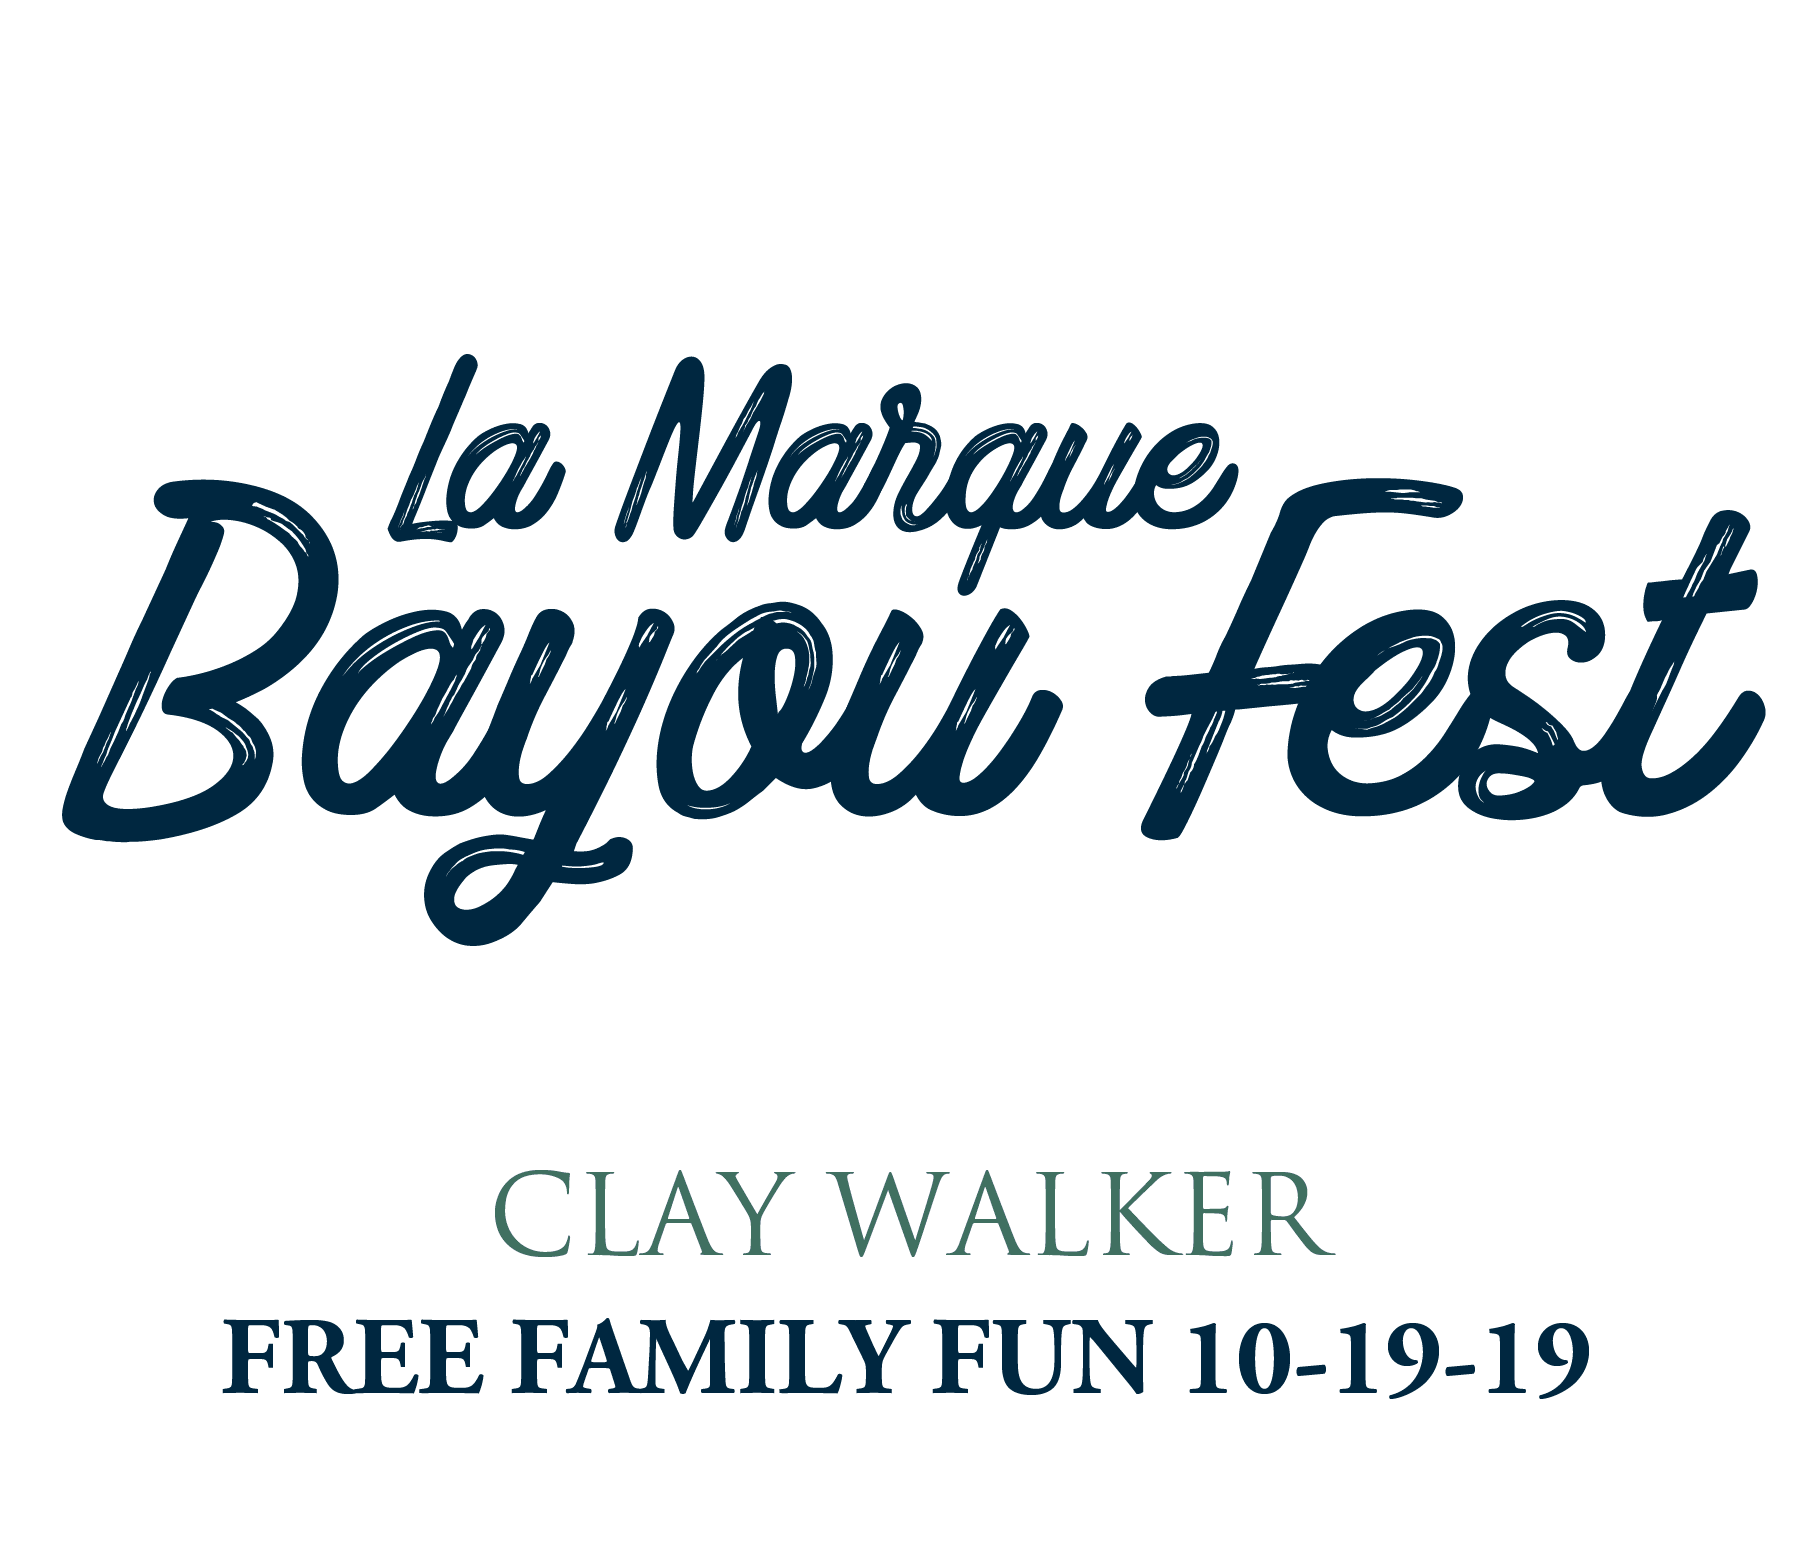 2019 Bayou Fest Clay Walker announcement